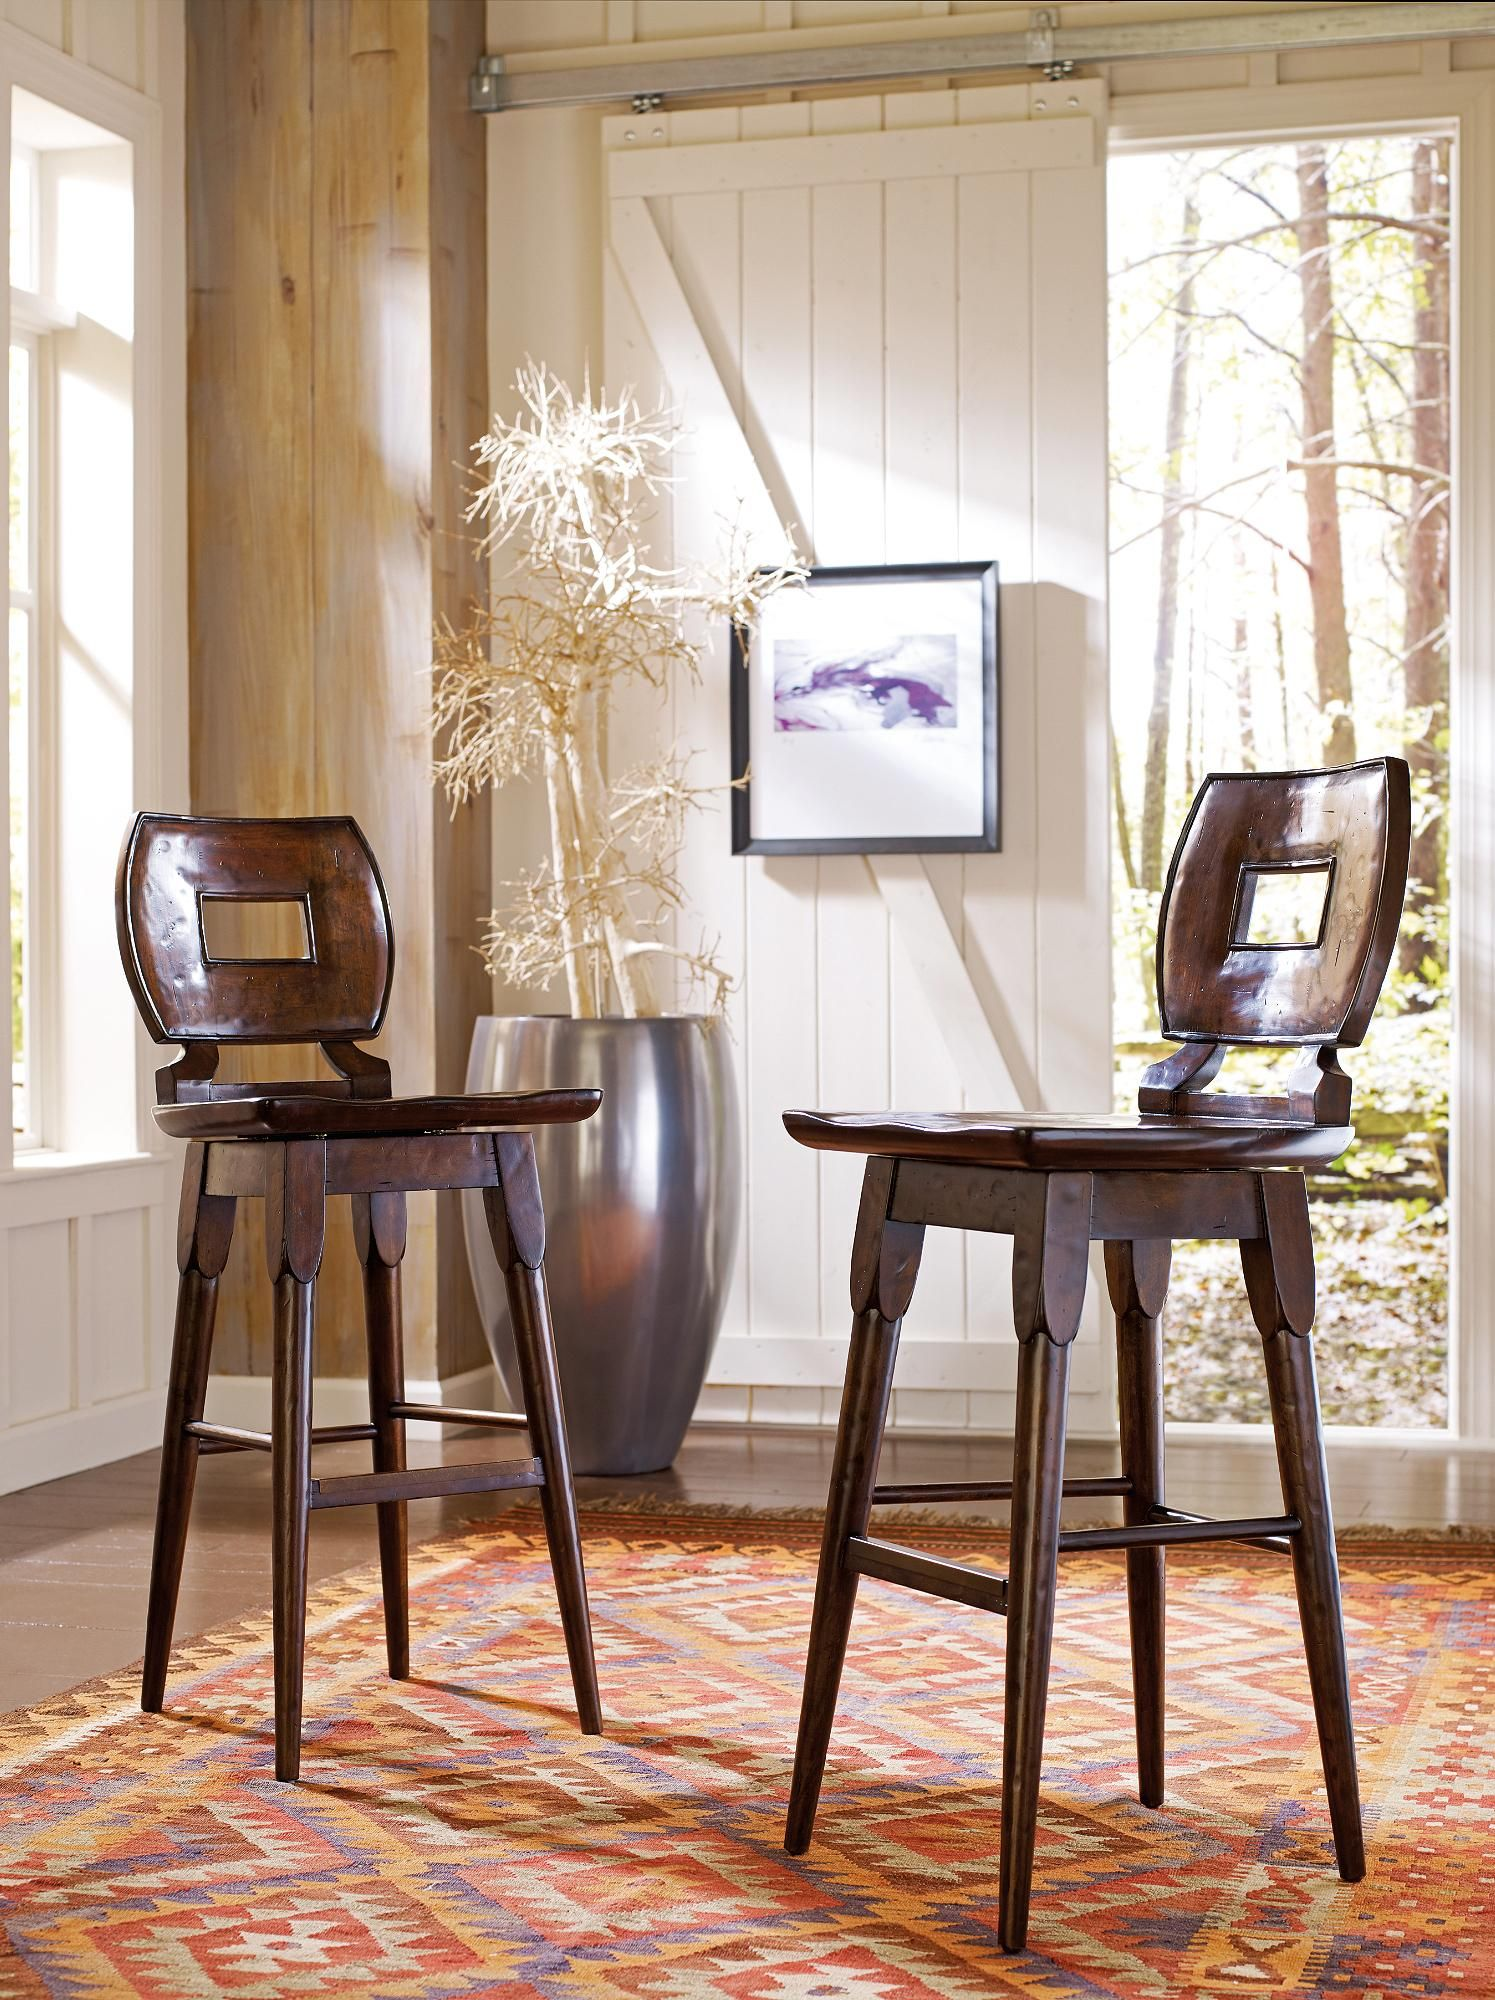 Appealing. Comfortable. Convenient. Everything that is expected from a seat in a high-end bar is brought home with this classic wood bar stool.